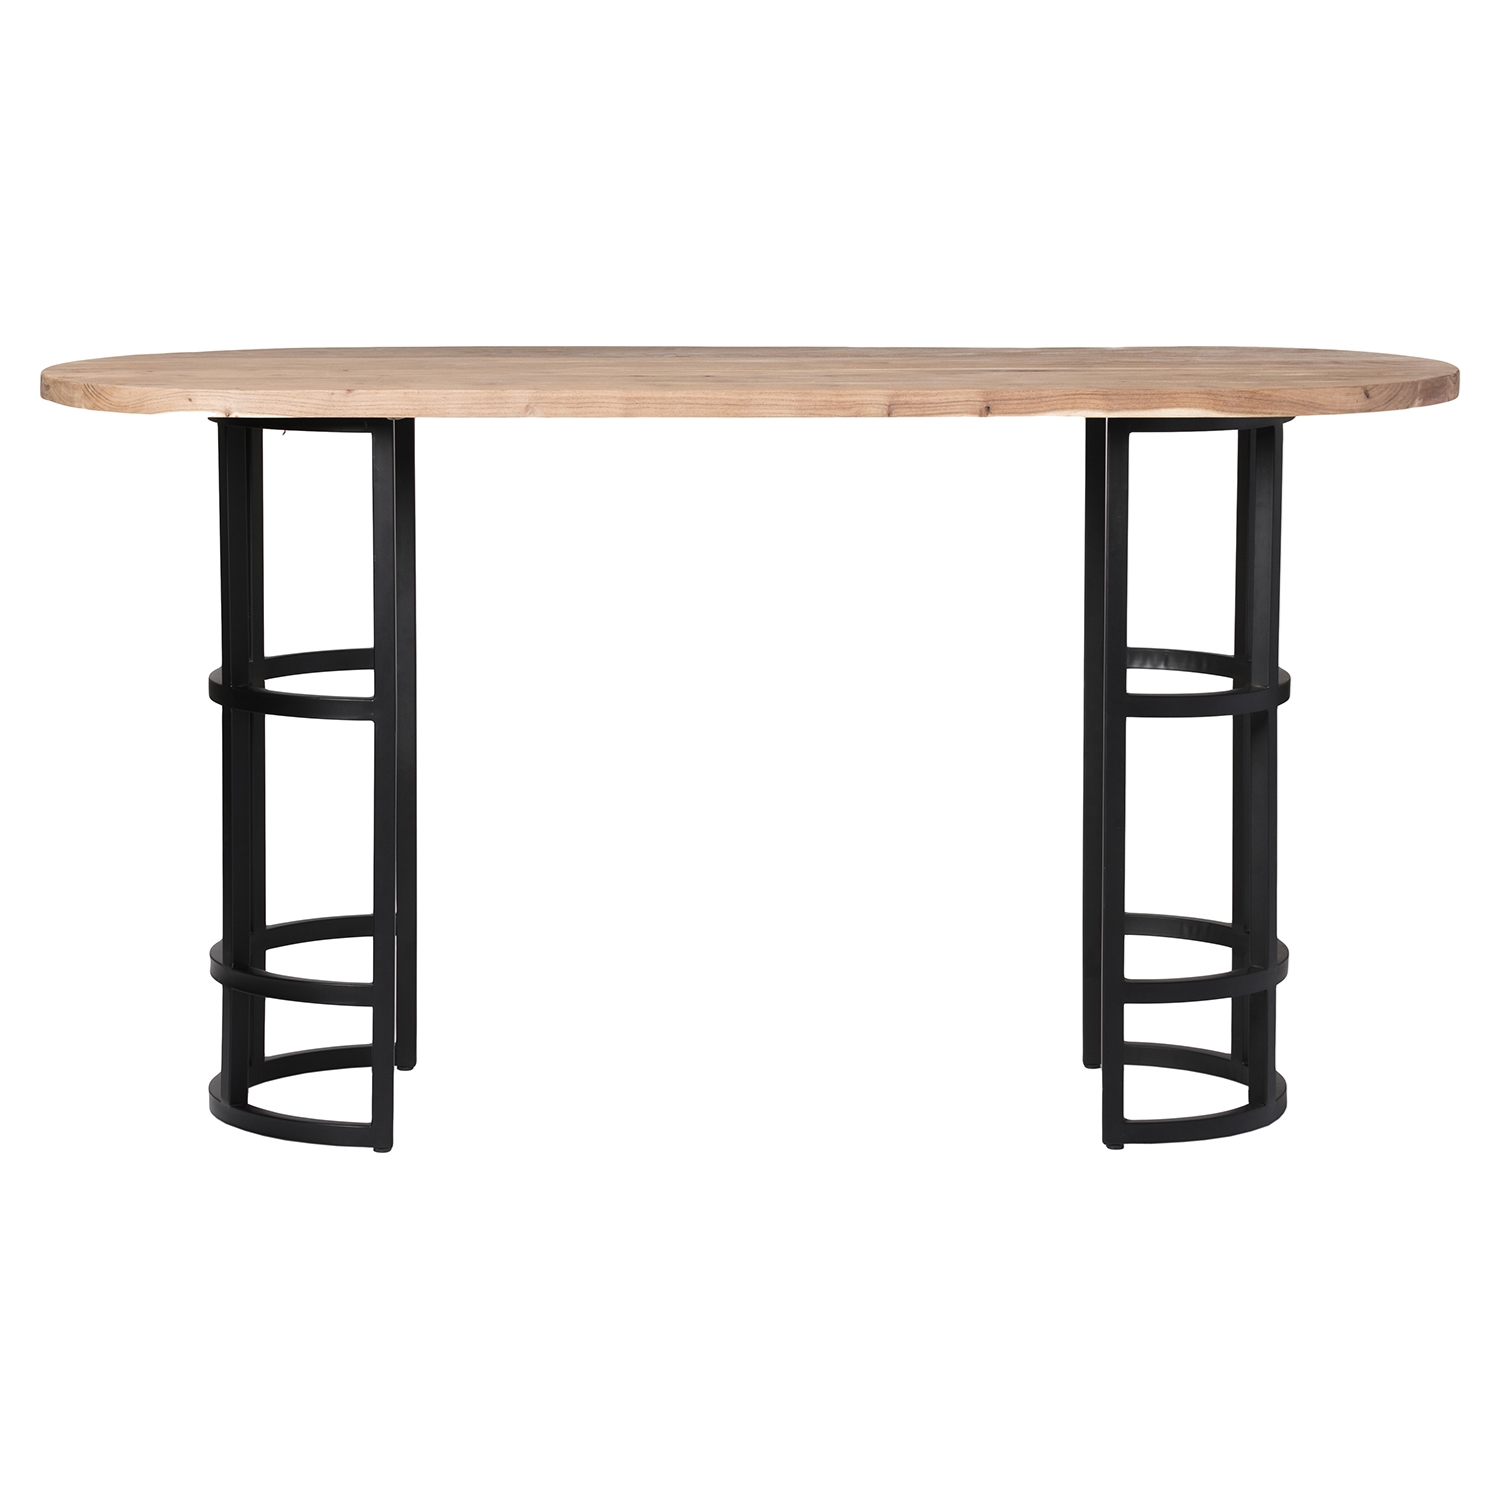 Race Oval Bar Table - Light Brown - MOES-VE-1009-21